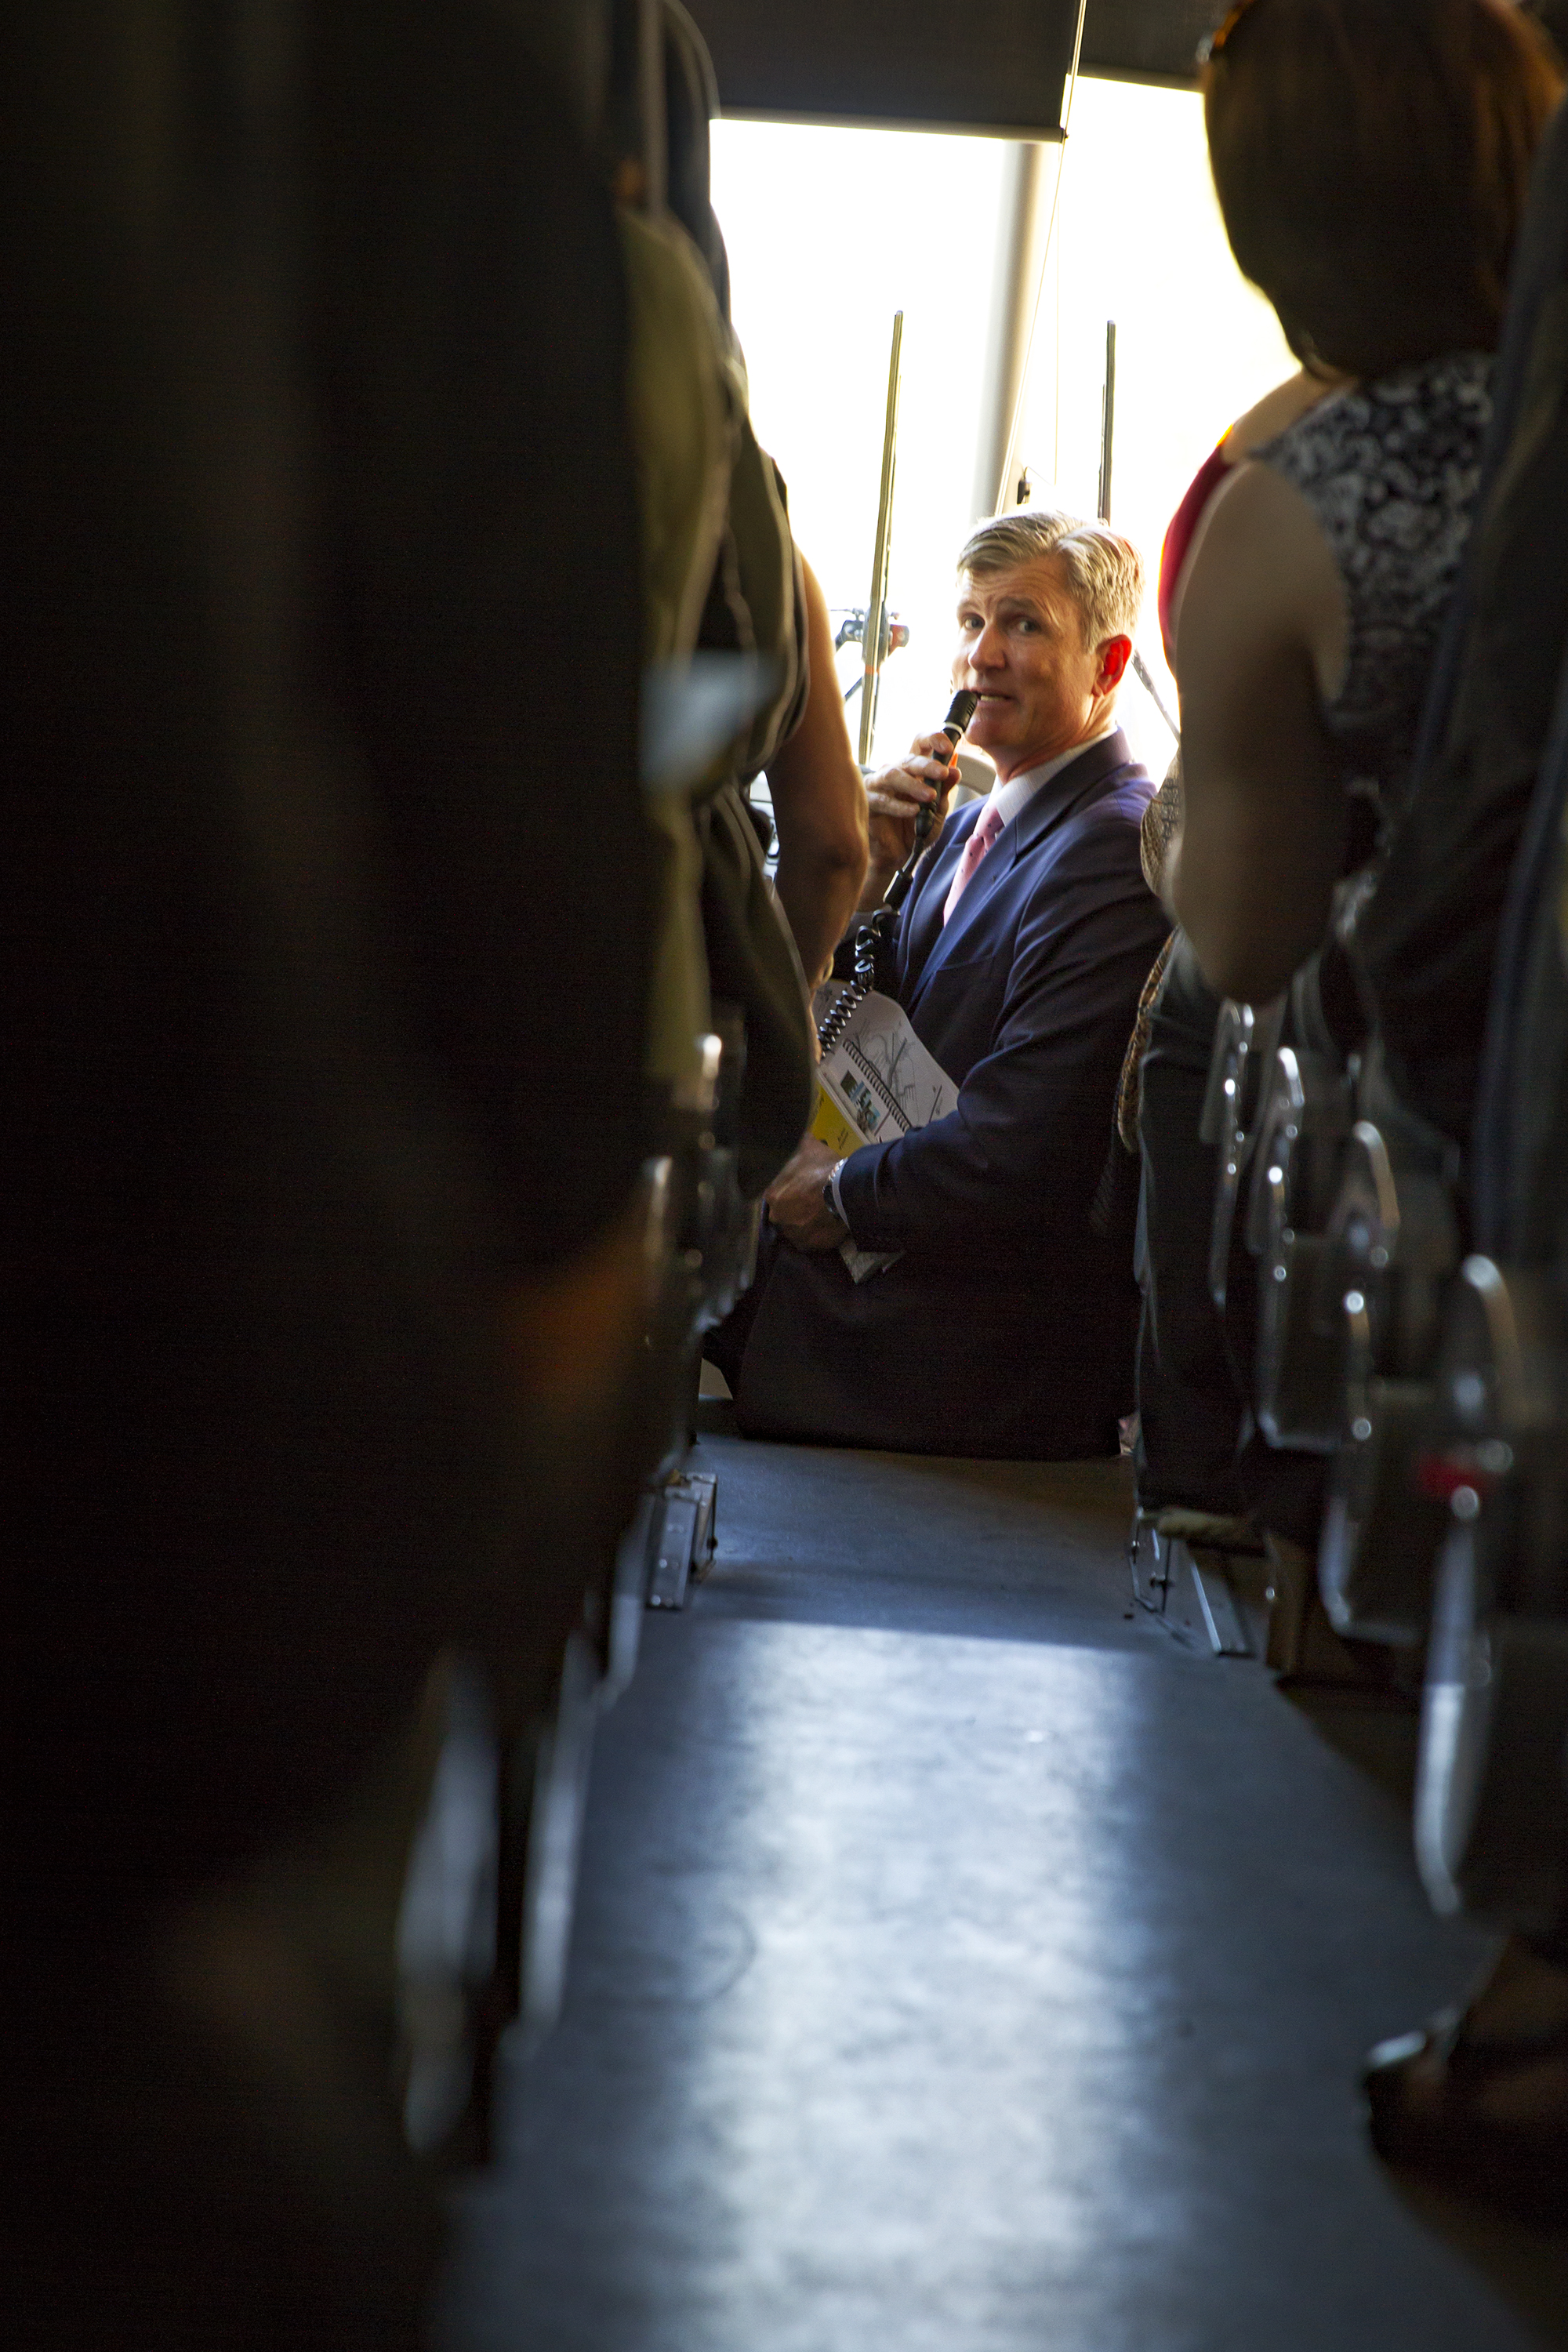 WASHINGTON, DC, 14 September 2016 -- Rick Starrs, CEO of the National Association of Veterans' Research and Education Foundations, speaks to NAVREF members on their way to advocate for veteran's rights in Congress.